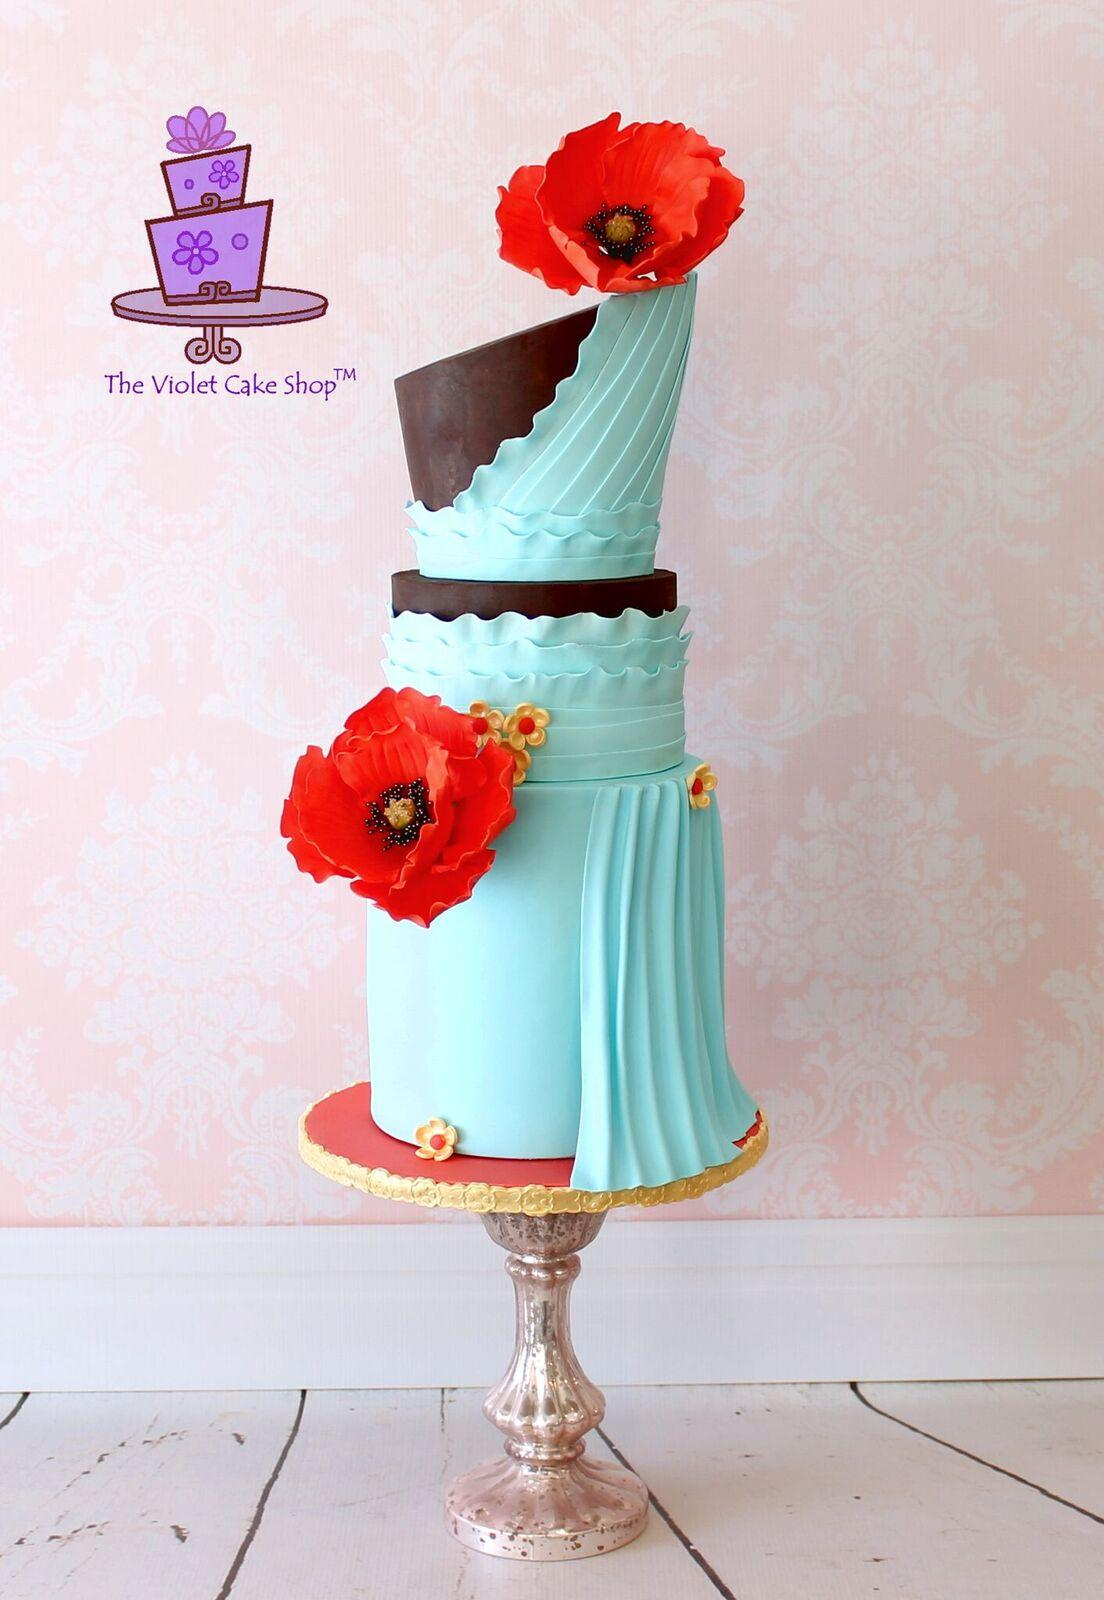 Draped turquoise fondant cake with red poppies